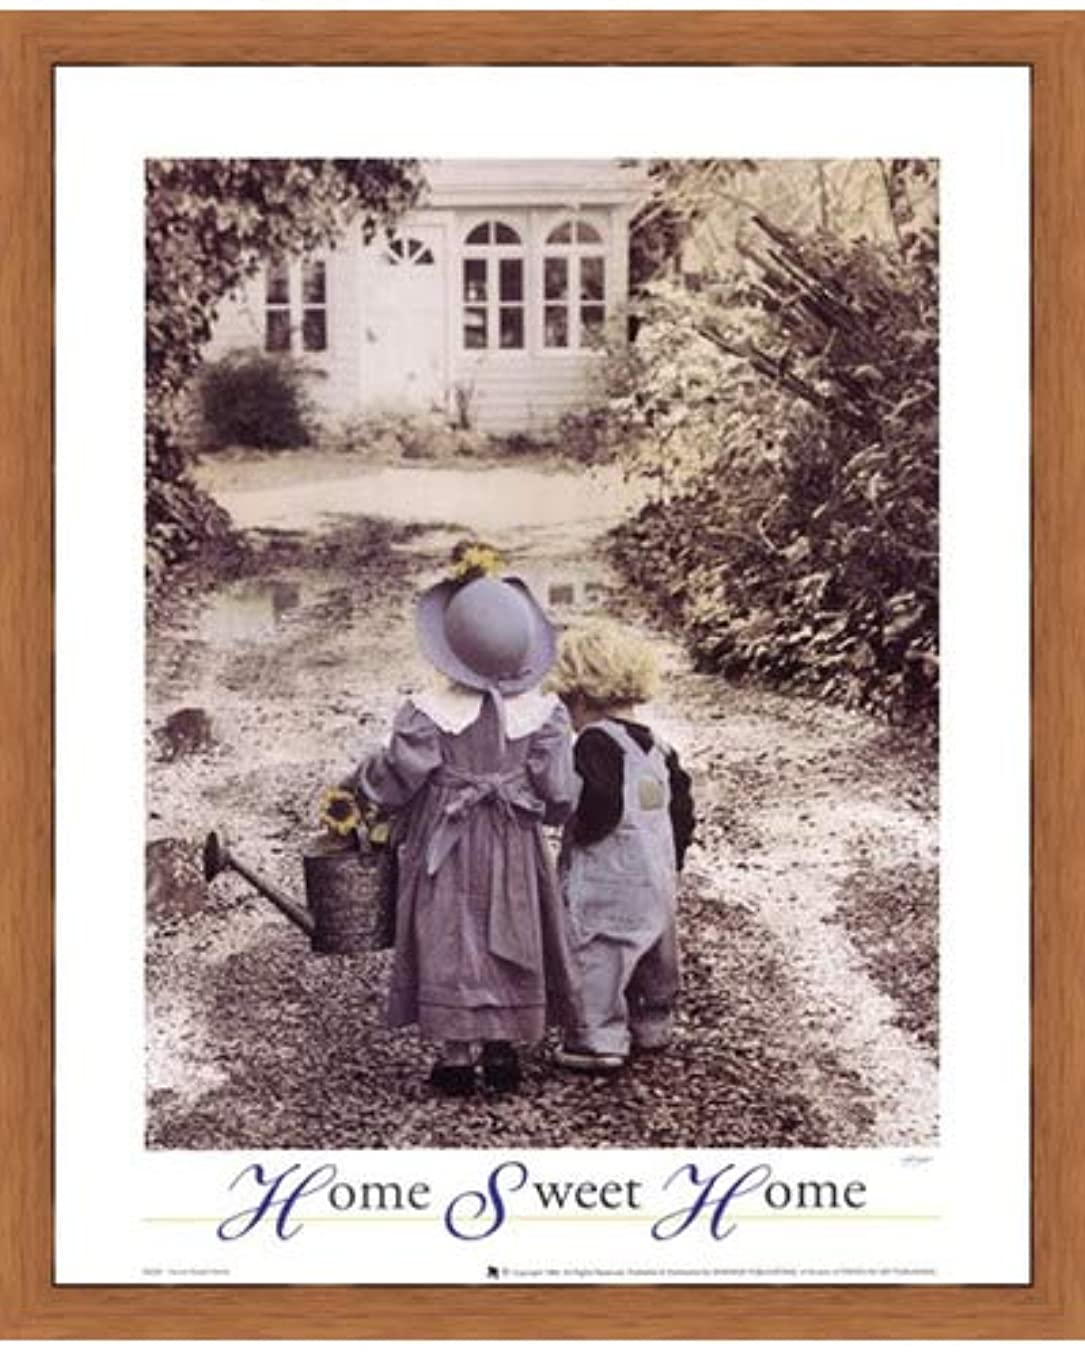 Home Sweet Home by Gail Goodwin – 16 x 20インチ – アートプリントポスター 16 x 20インチ LE_664396-F8744-16x20